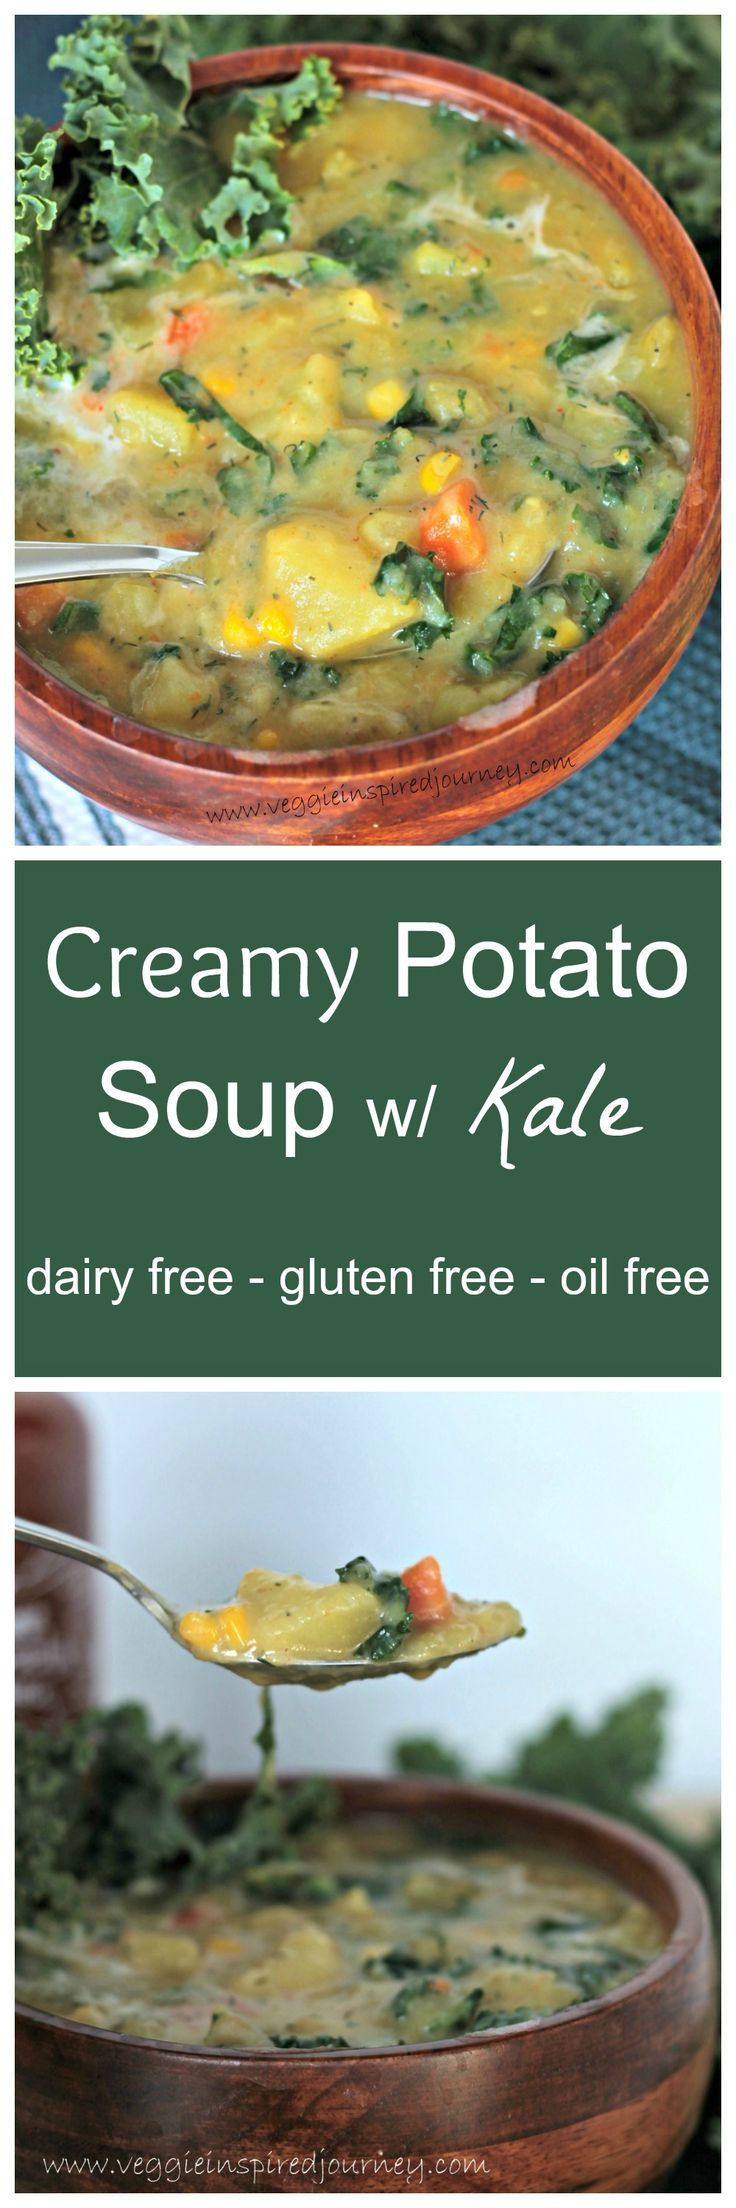 ... Vegan Food - Soup - Potato on Pinterest | Vegan potato soup, Potato